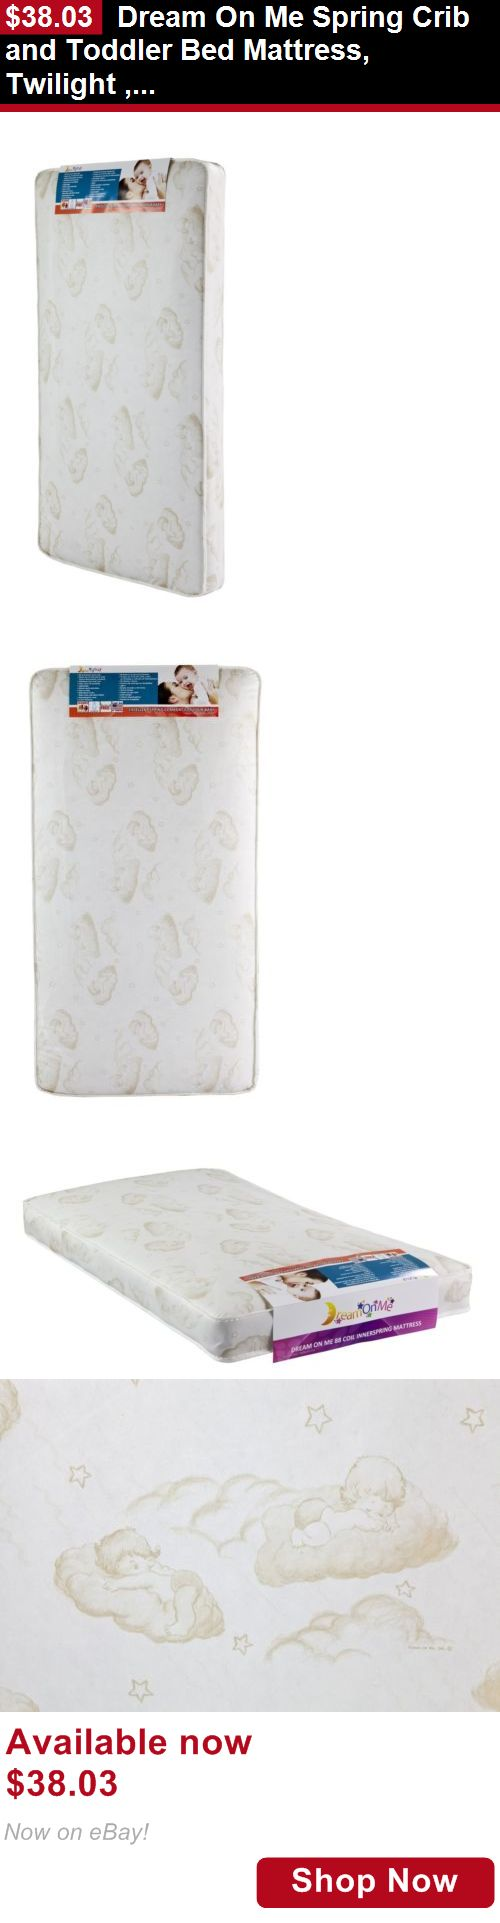 Mattress Pads And Covers: Dream On Me Spring Crib And Toddler Bed Mattress, Twilight , New, Free Shipping BUY IT NOW ONLY: $38.03